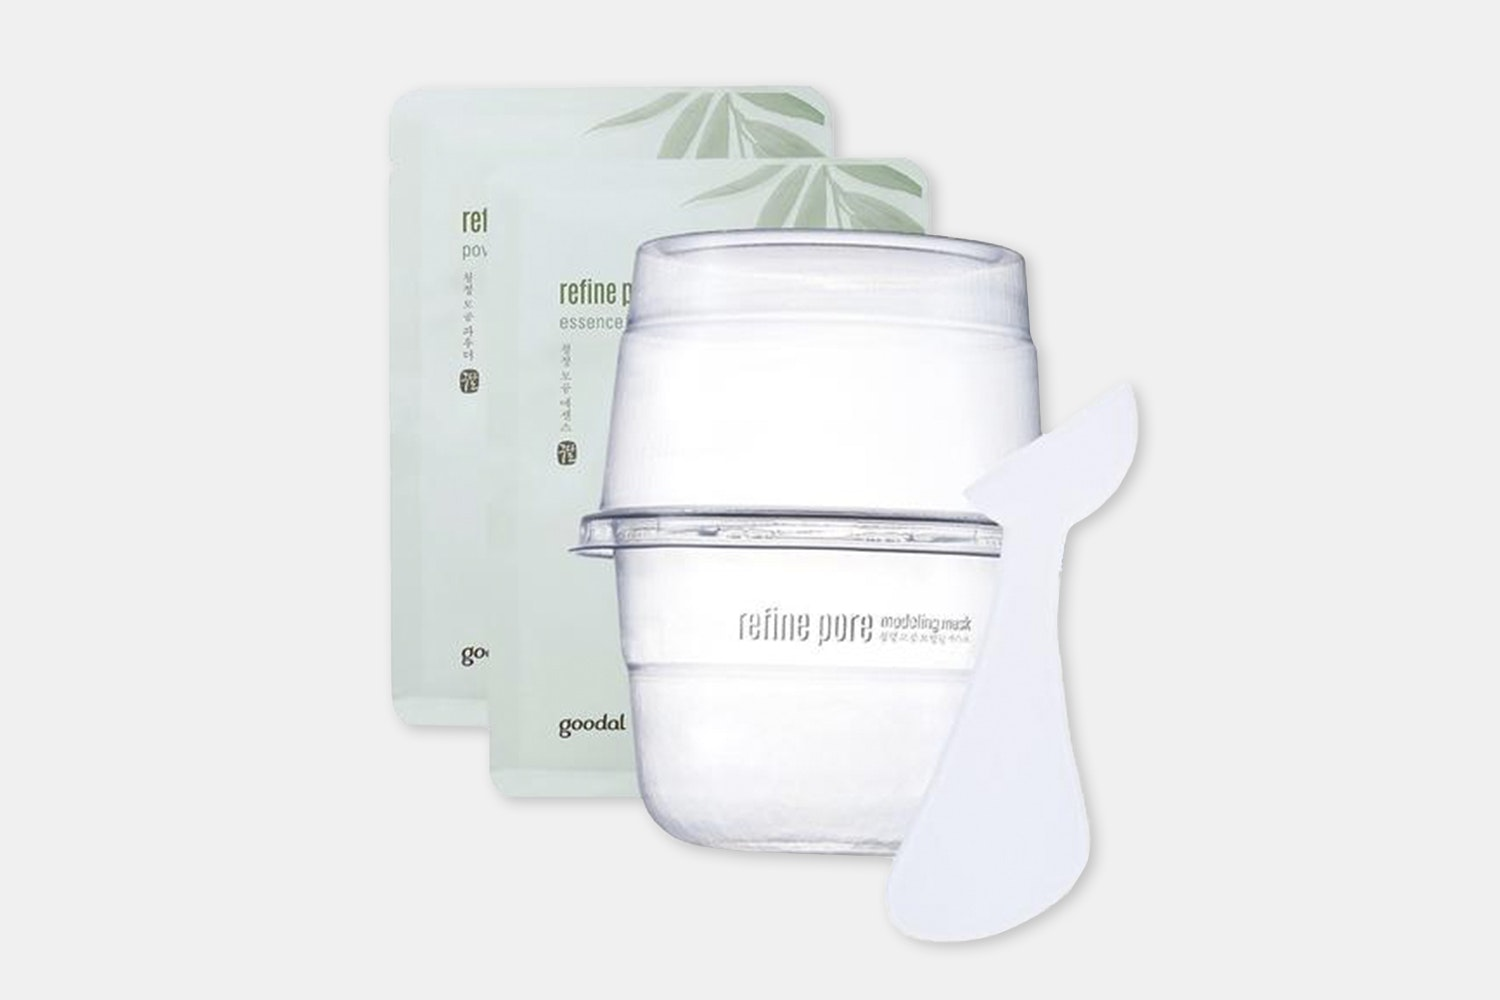 Goodal Refine Pore Modeling Mask Set